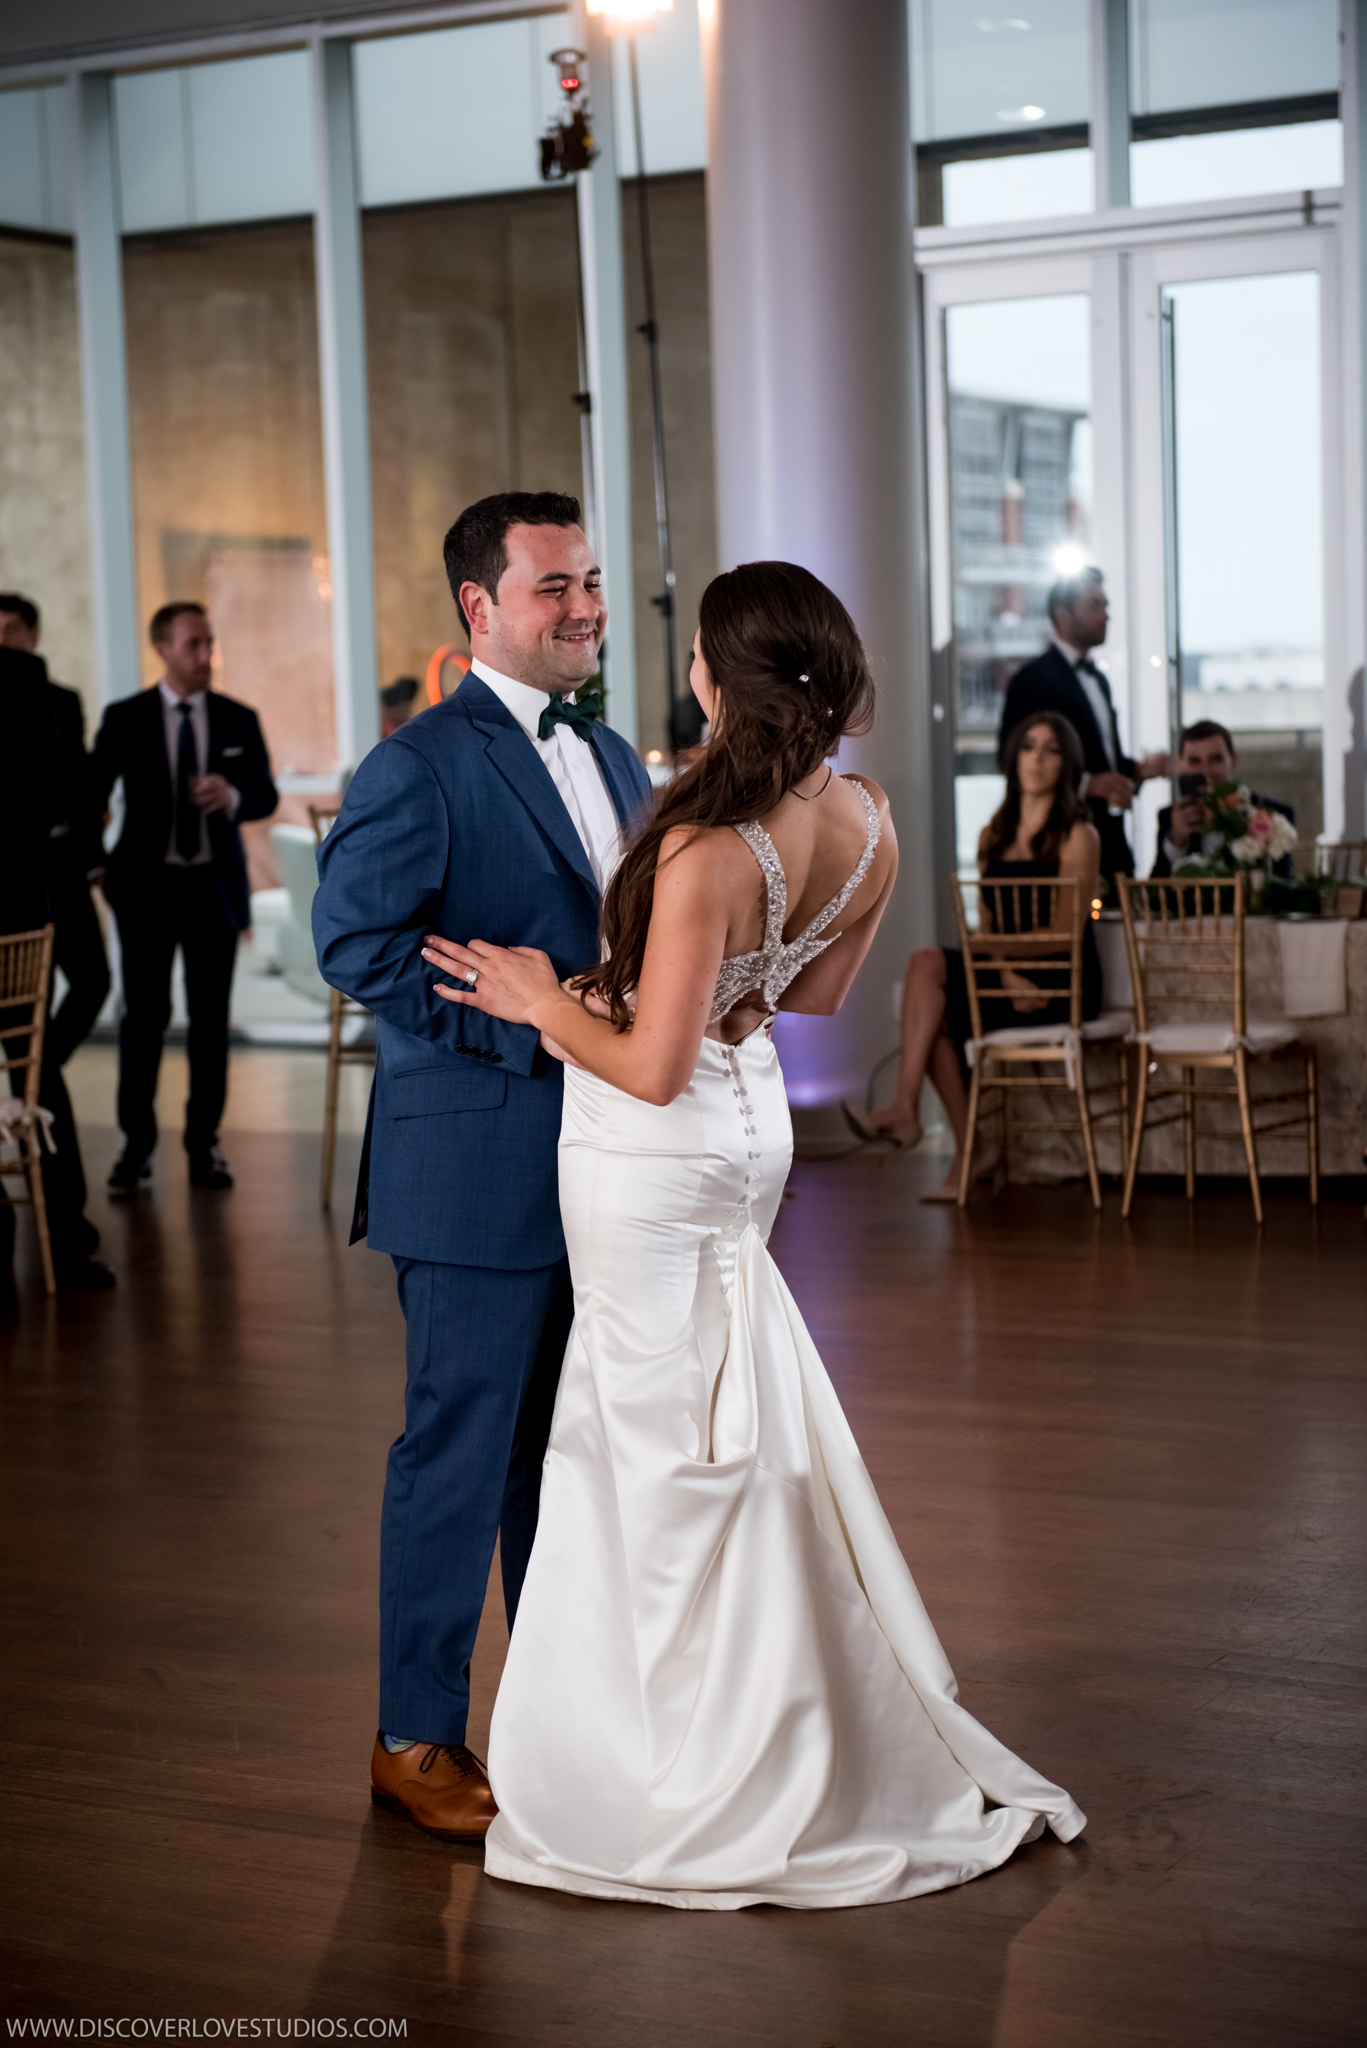 Bride and groom dance during their Mint Museum Uptown reception captured by Discover Love Studios